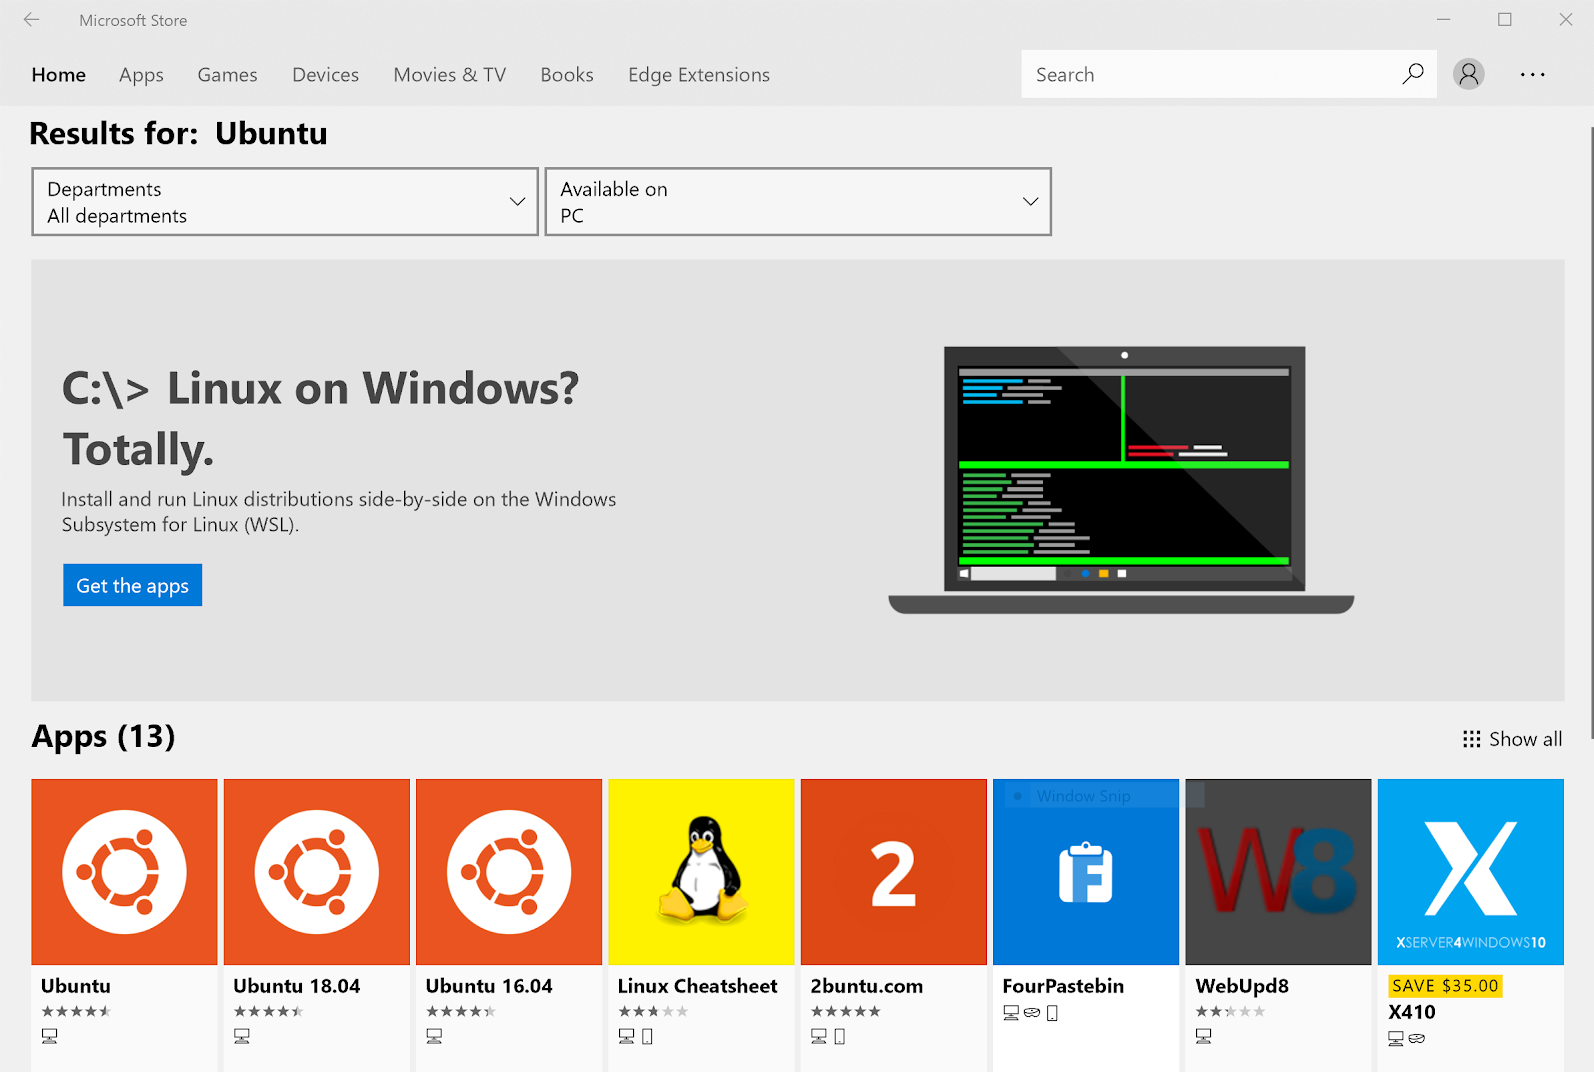 Getting set up with Windows 10 - Hands-On Data Science with